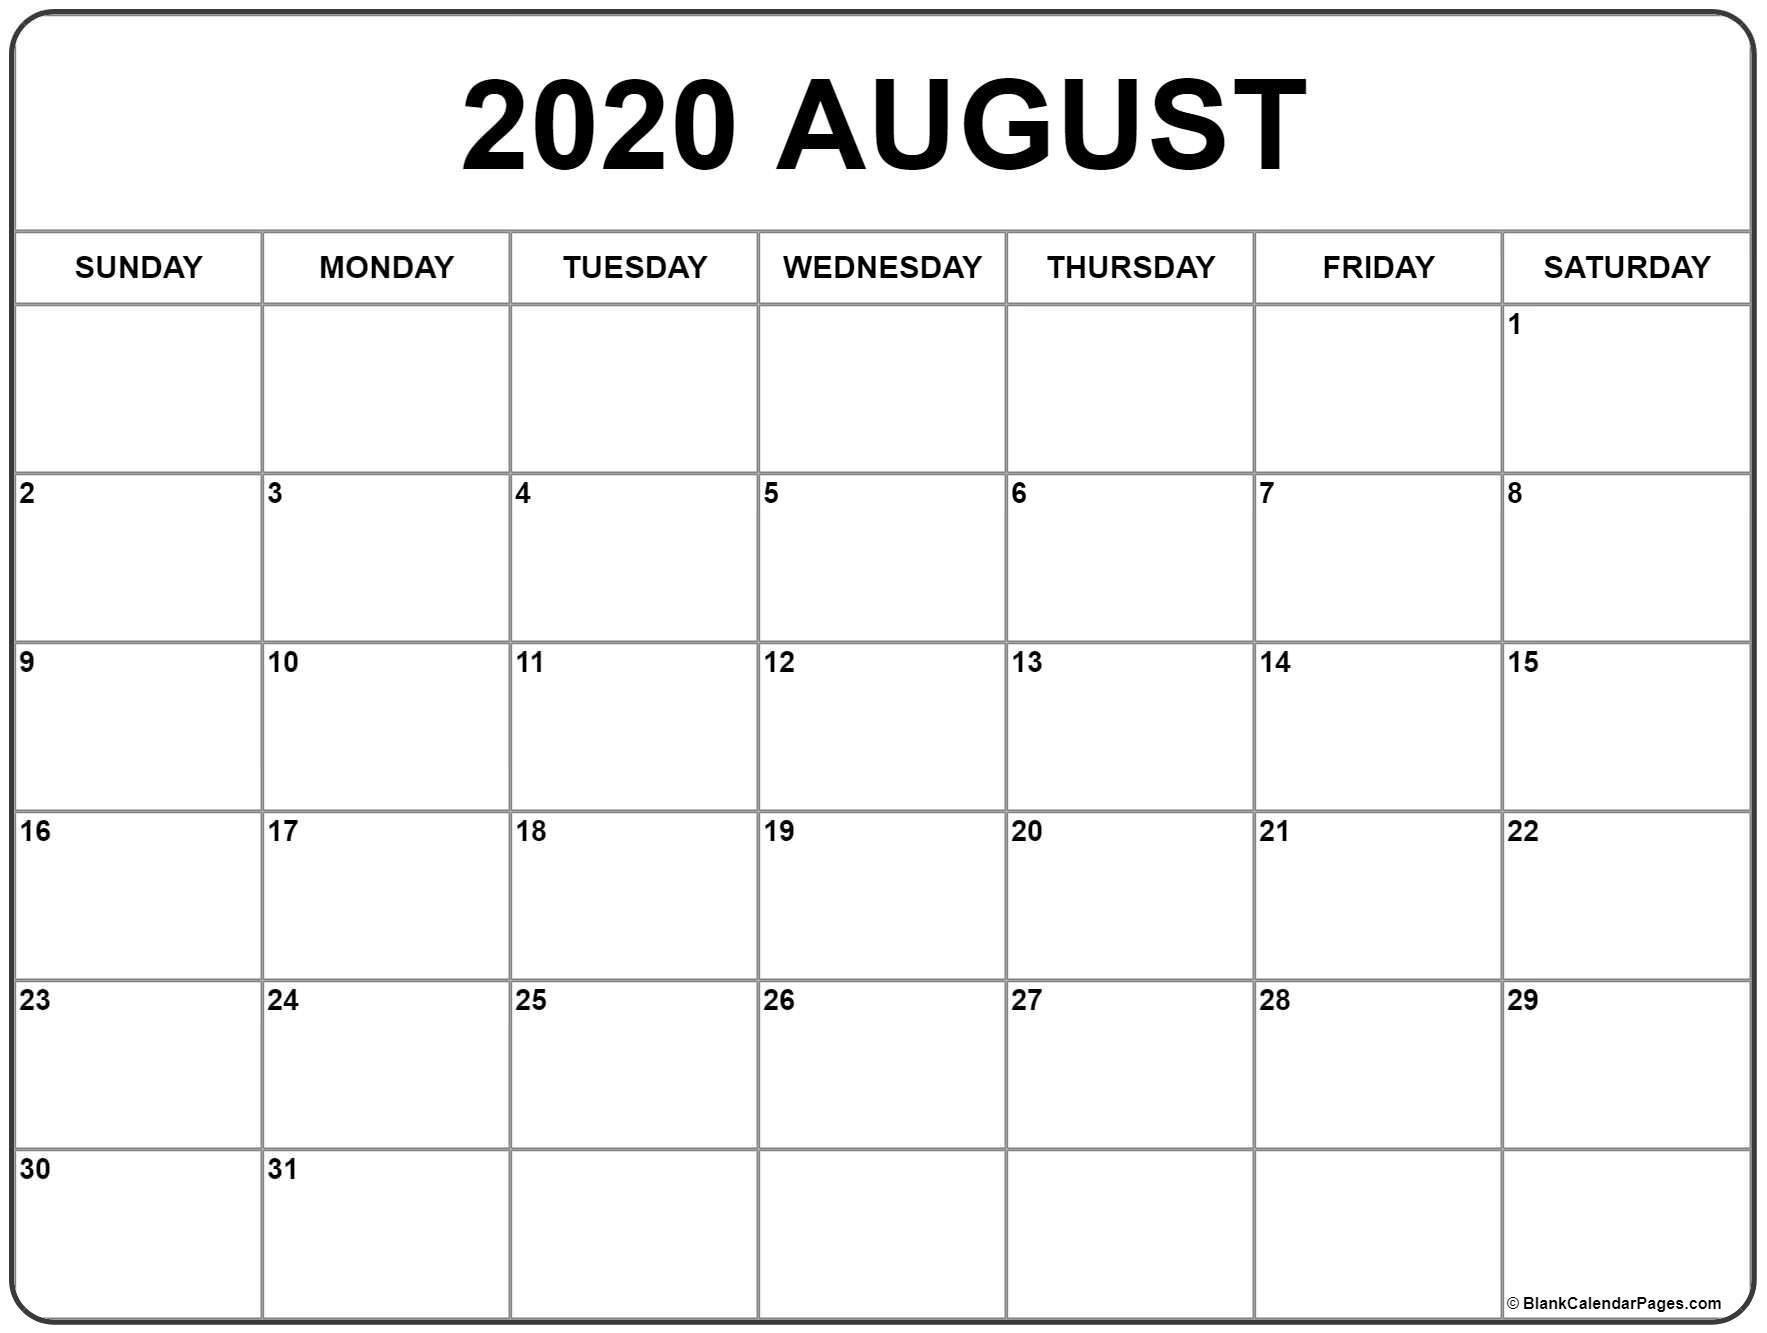 August 2020 Calendar | Free Printable Monthly Calendars-Calendar Template Fill In Aug 2020